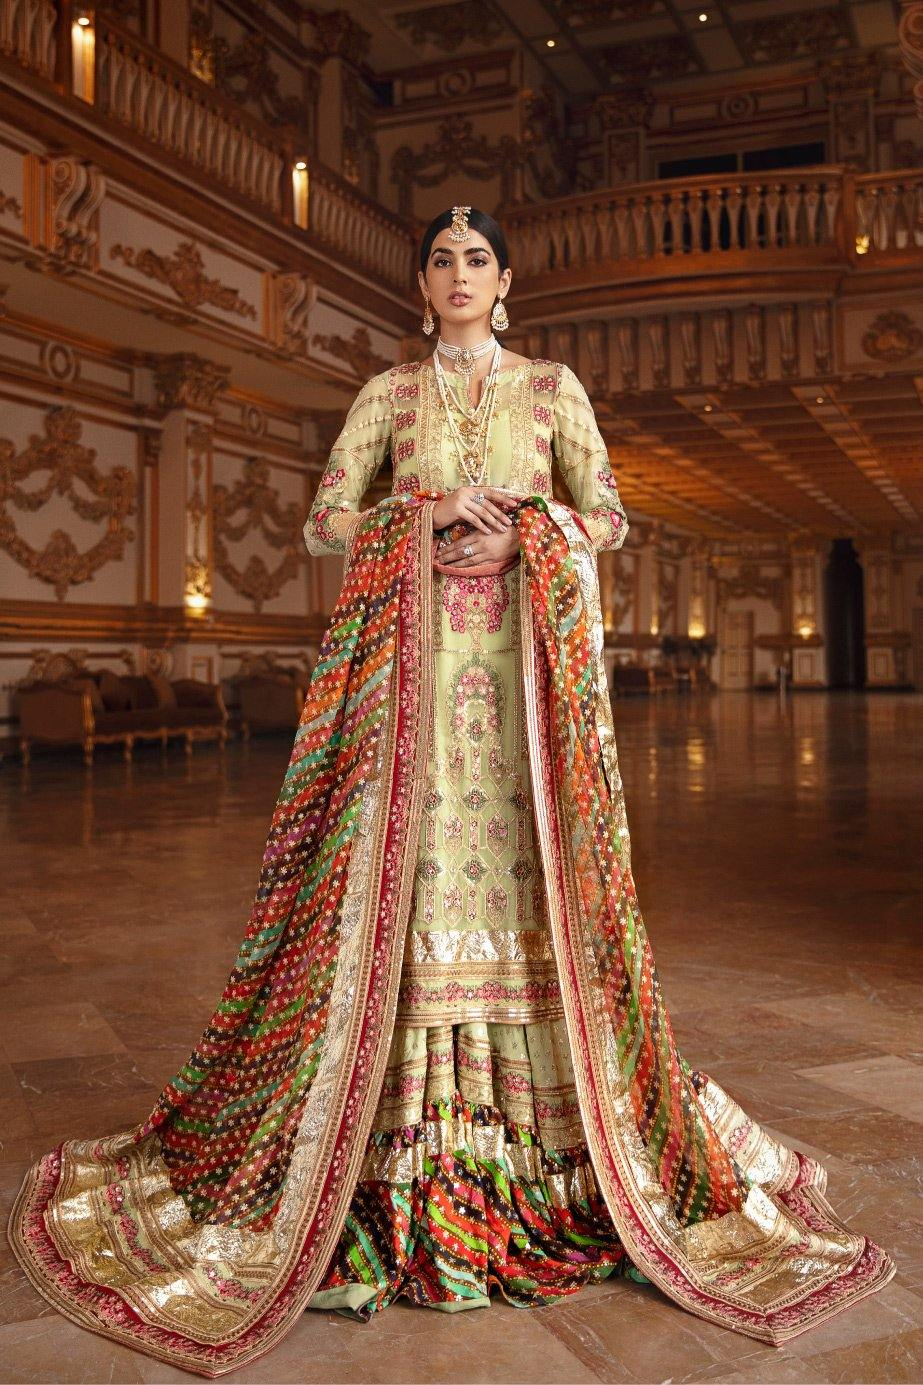 A female model wearing a stunning and beautiful Formal Wedding Gharara and posing for the Photoshoot of Maryum N Maria Formal Wedding Dresses Collection